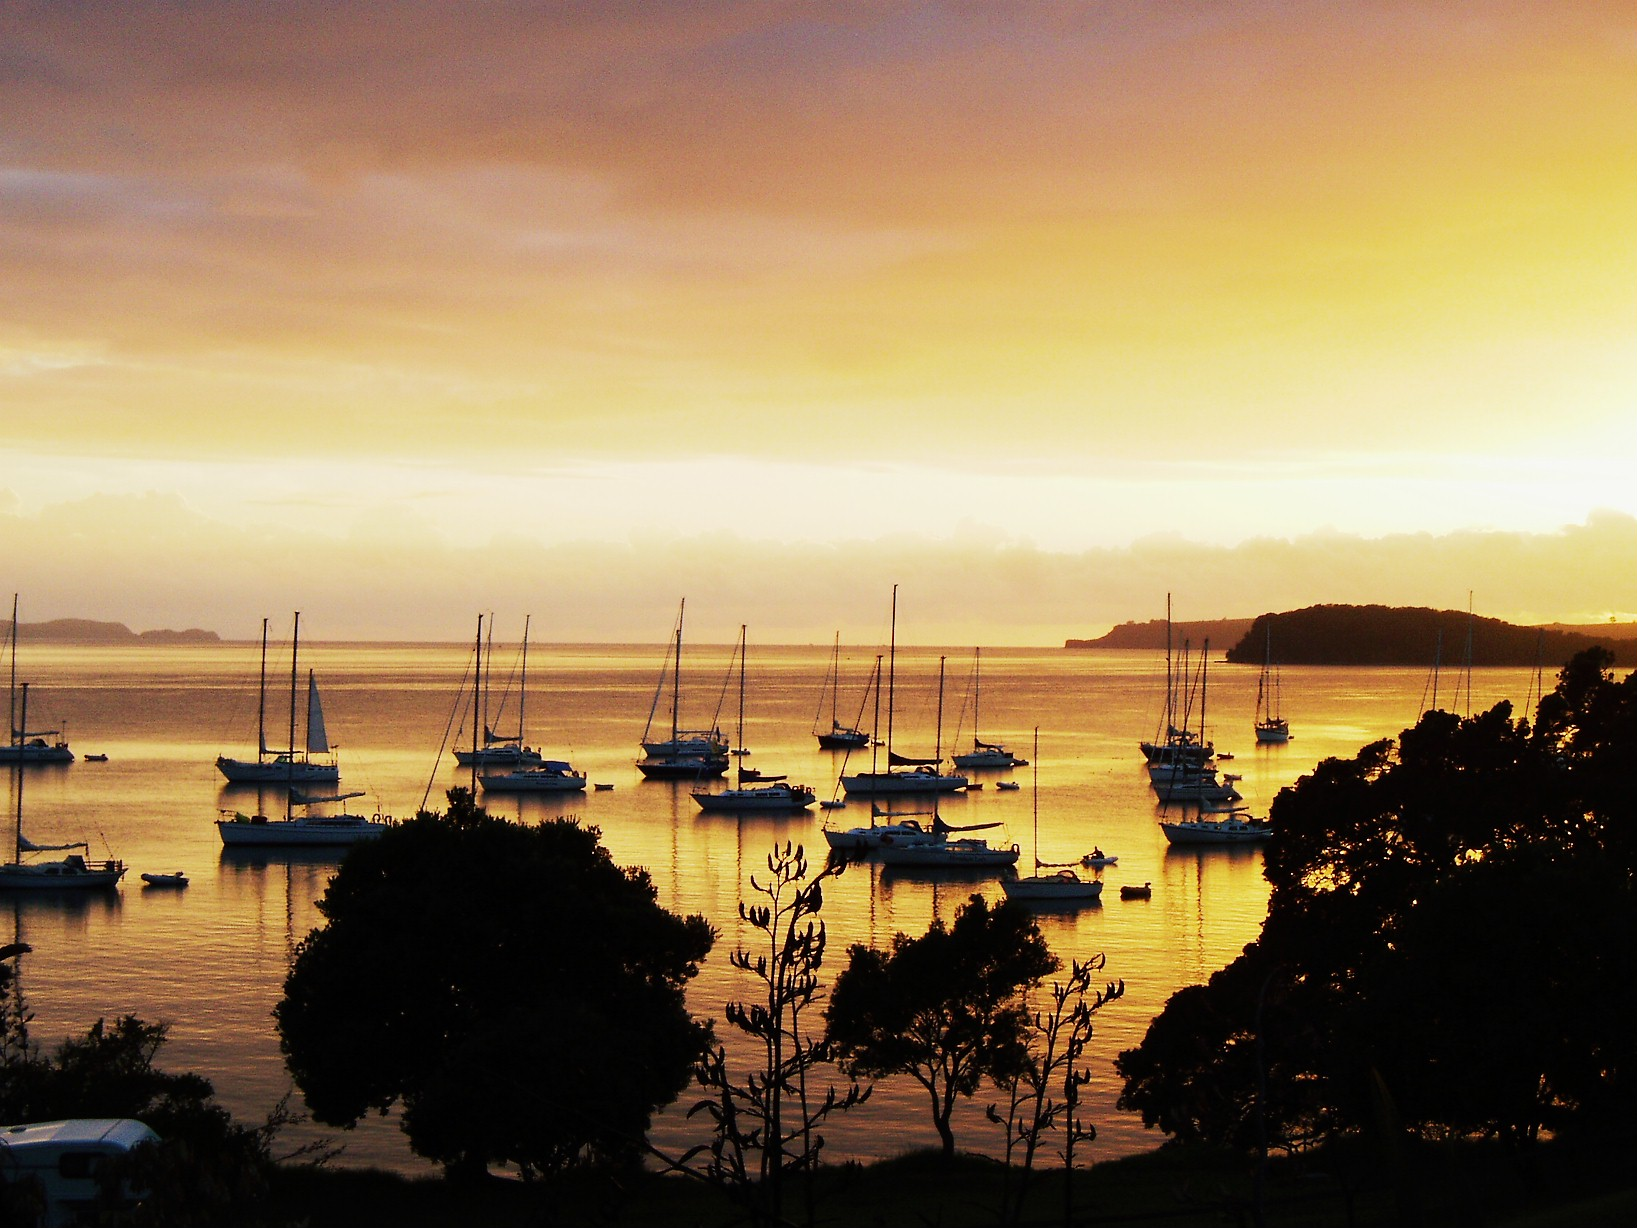 Sunrise at Mahurangi West, North Auckland.